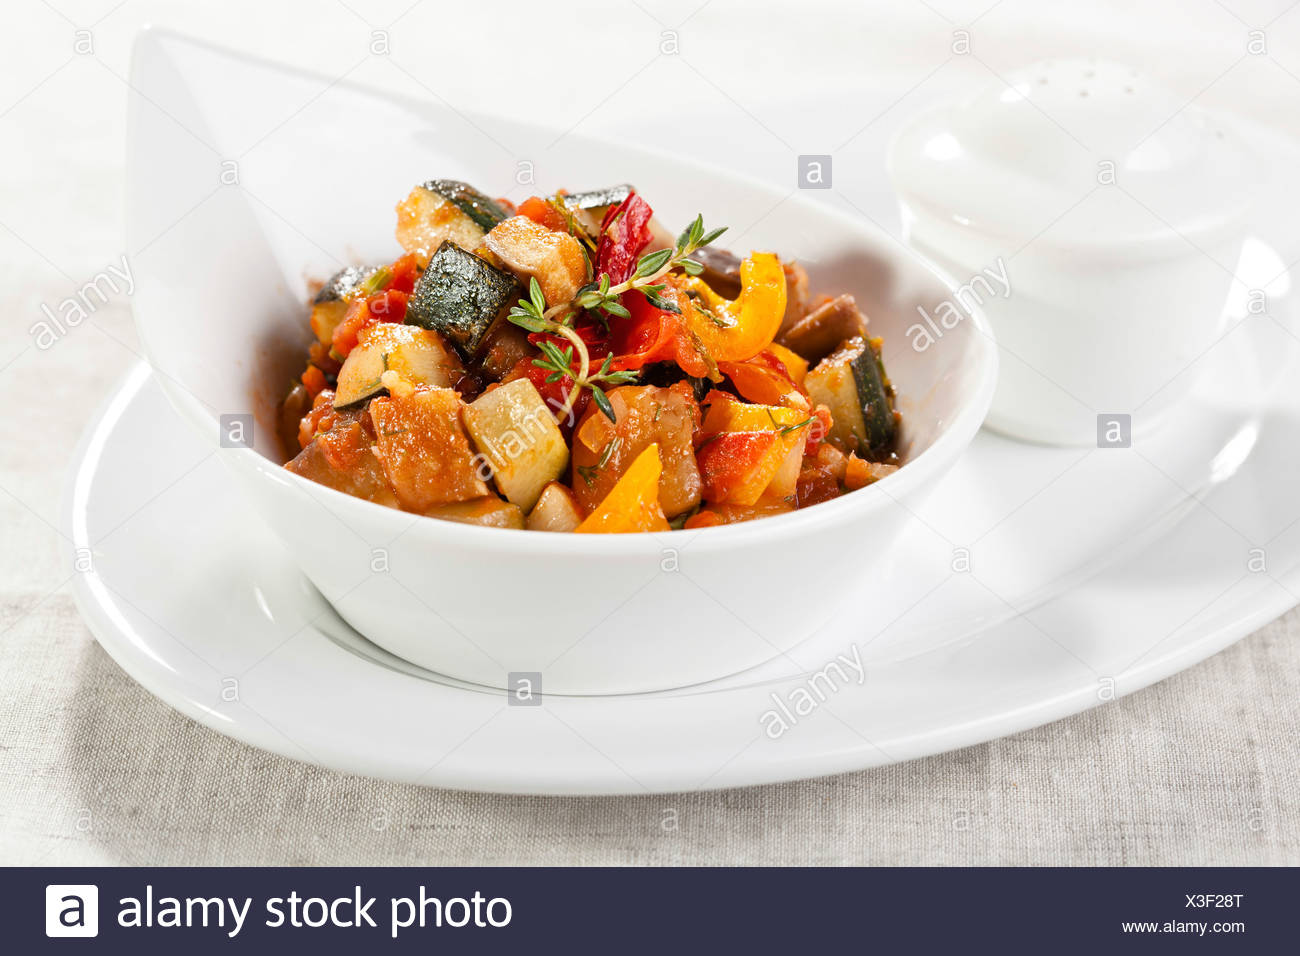 Ratatouille French Stock Photos & Ratatouille French Stock Images ...